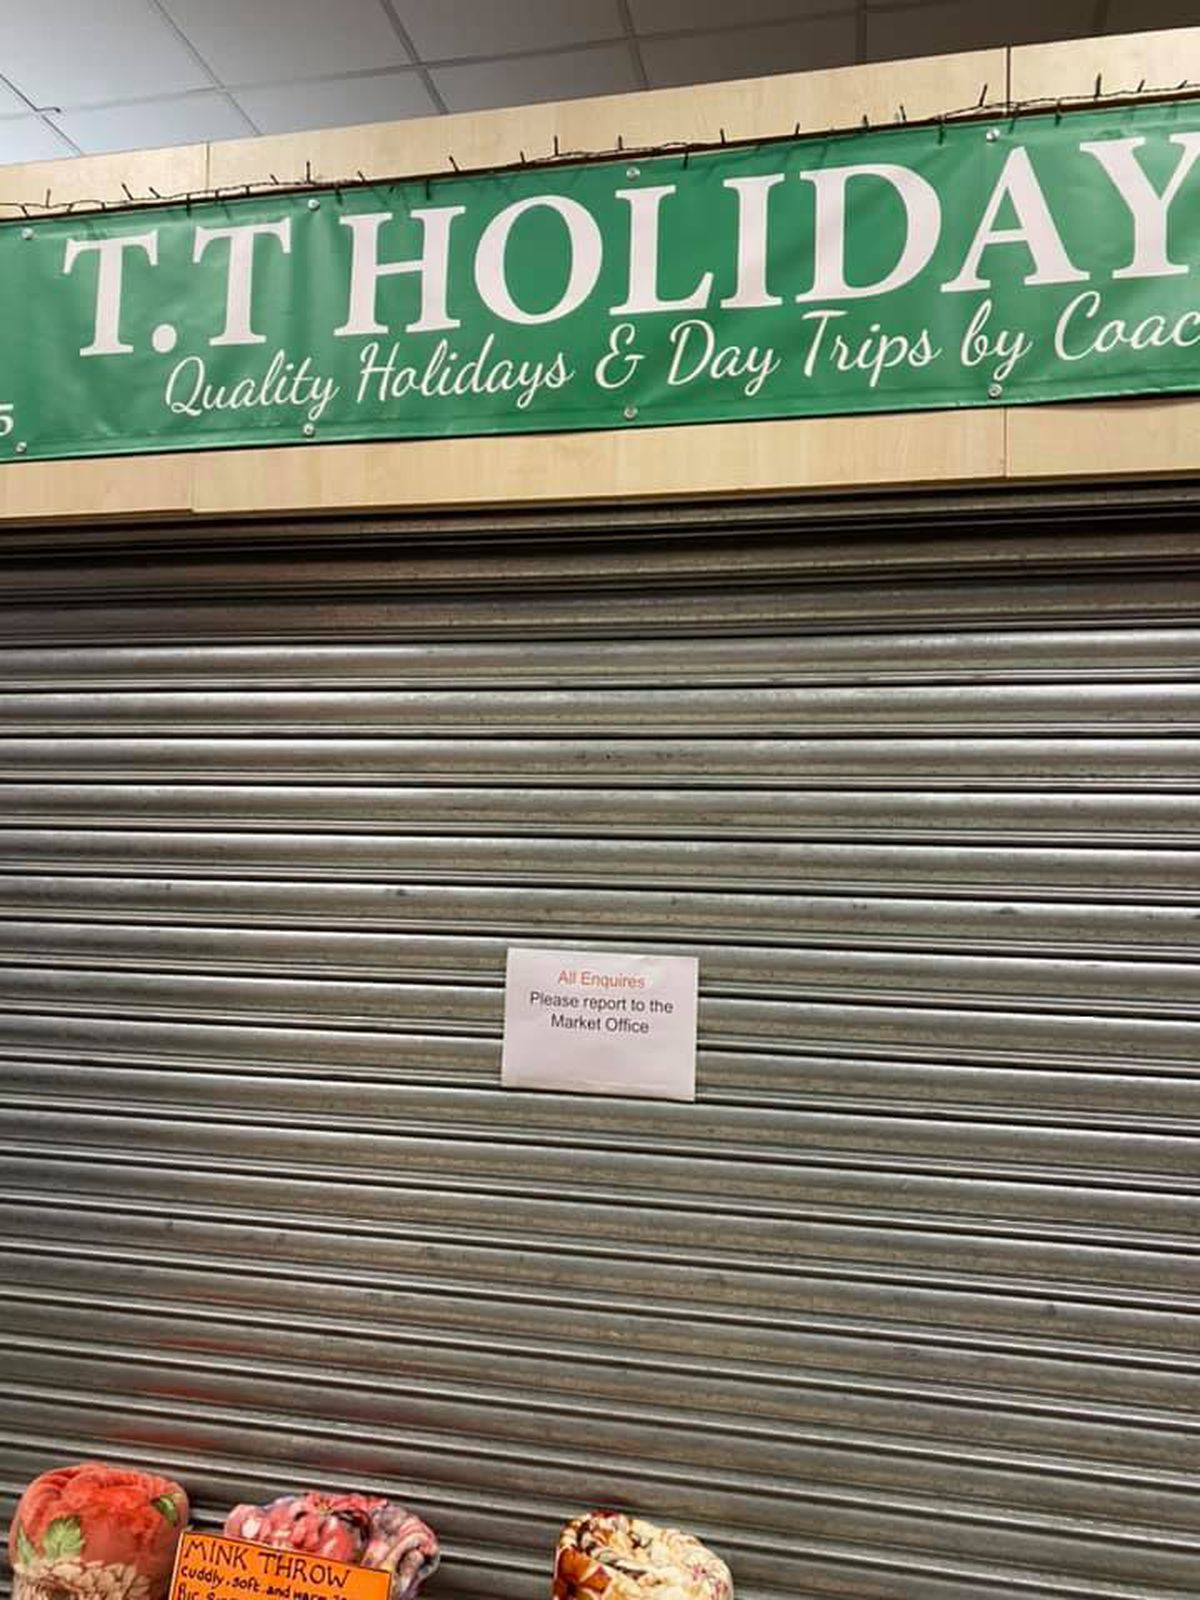 The closed up stall with a notice on asking people to go instead to the market office. Image: Facebook